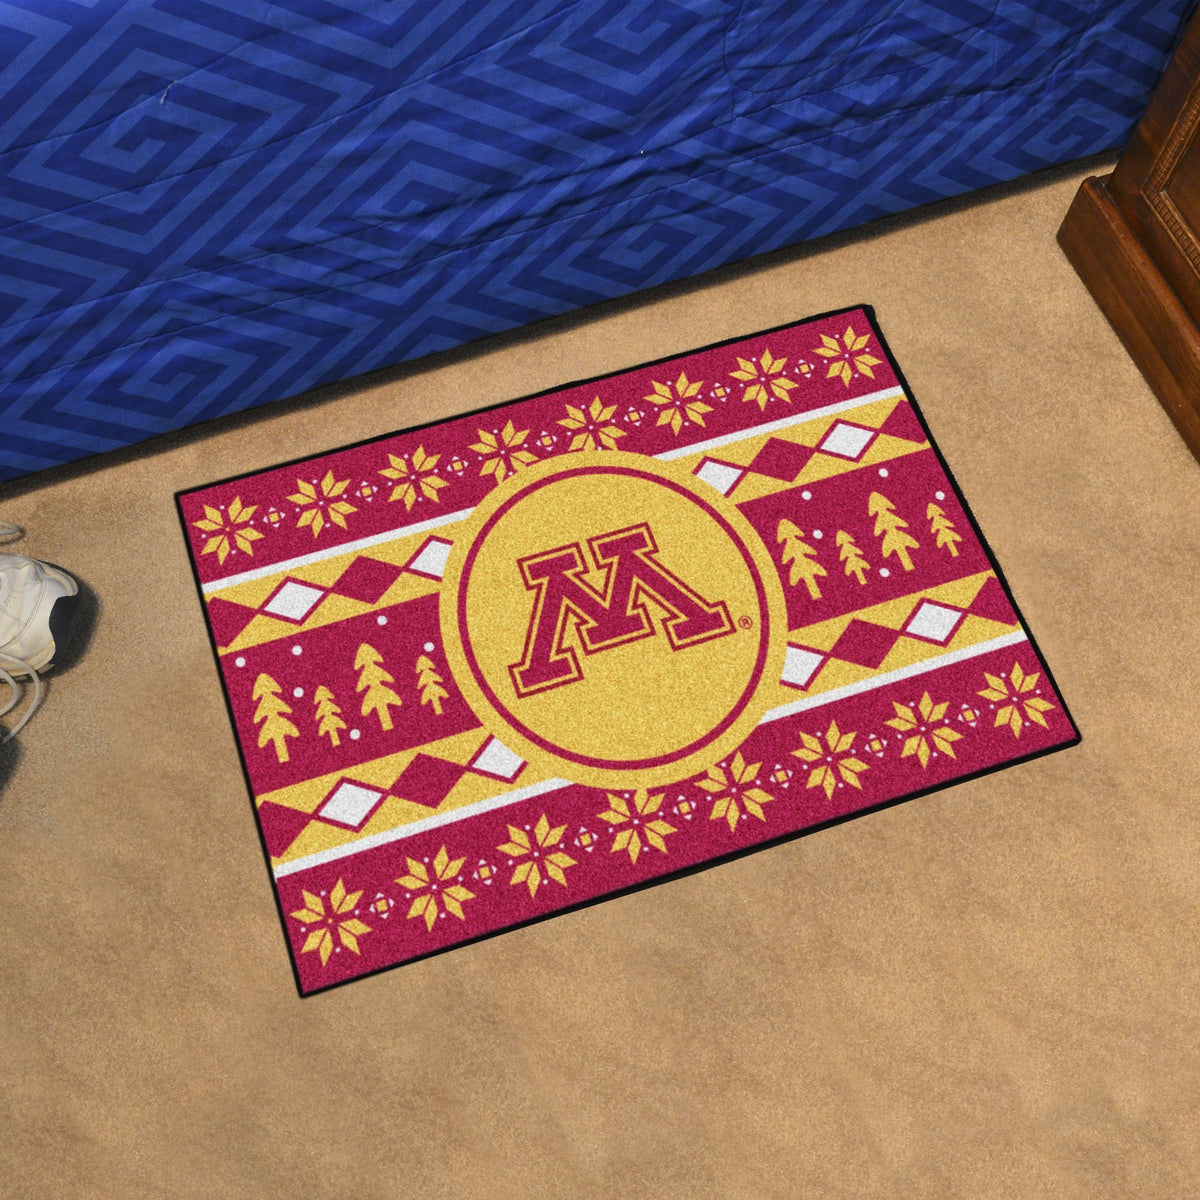 Collegiate - Holiday Sweater Starter Mat Collegiate Mats, Rectangular Mats, Holiday Sweater Starter Mat, Collegiate, Home Fan Mats Minnesota